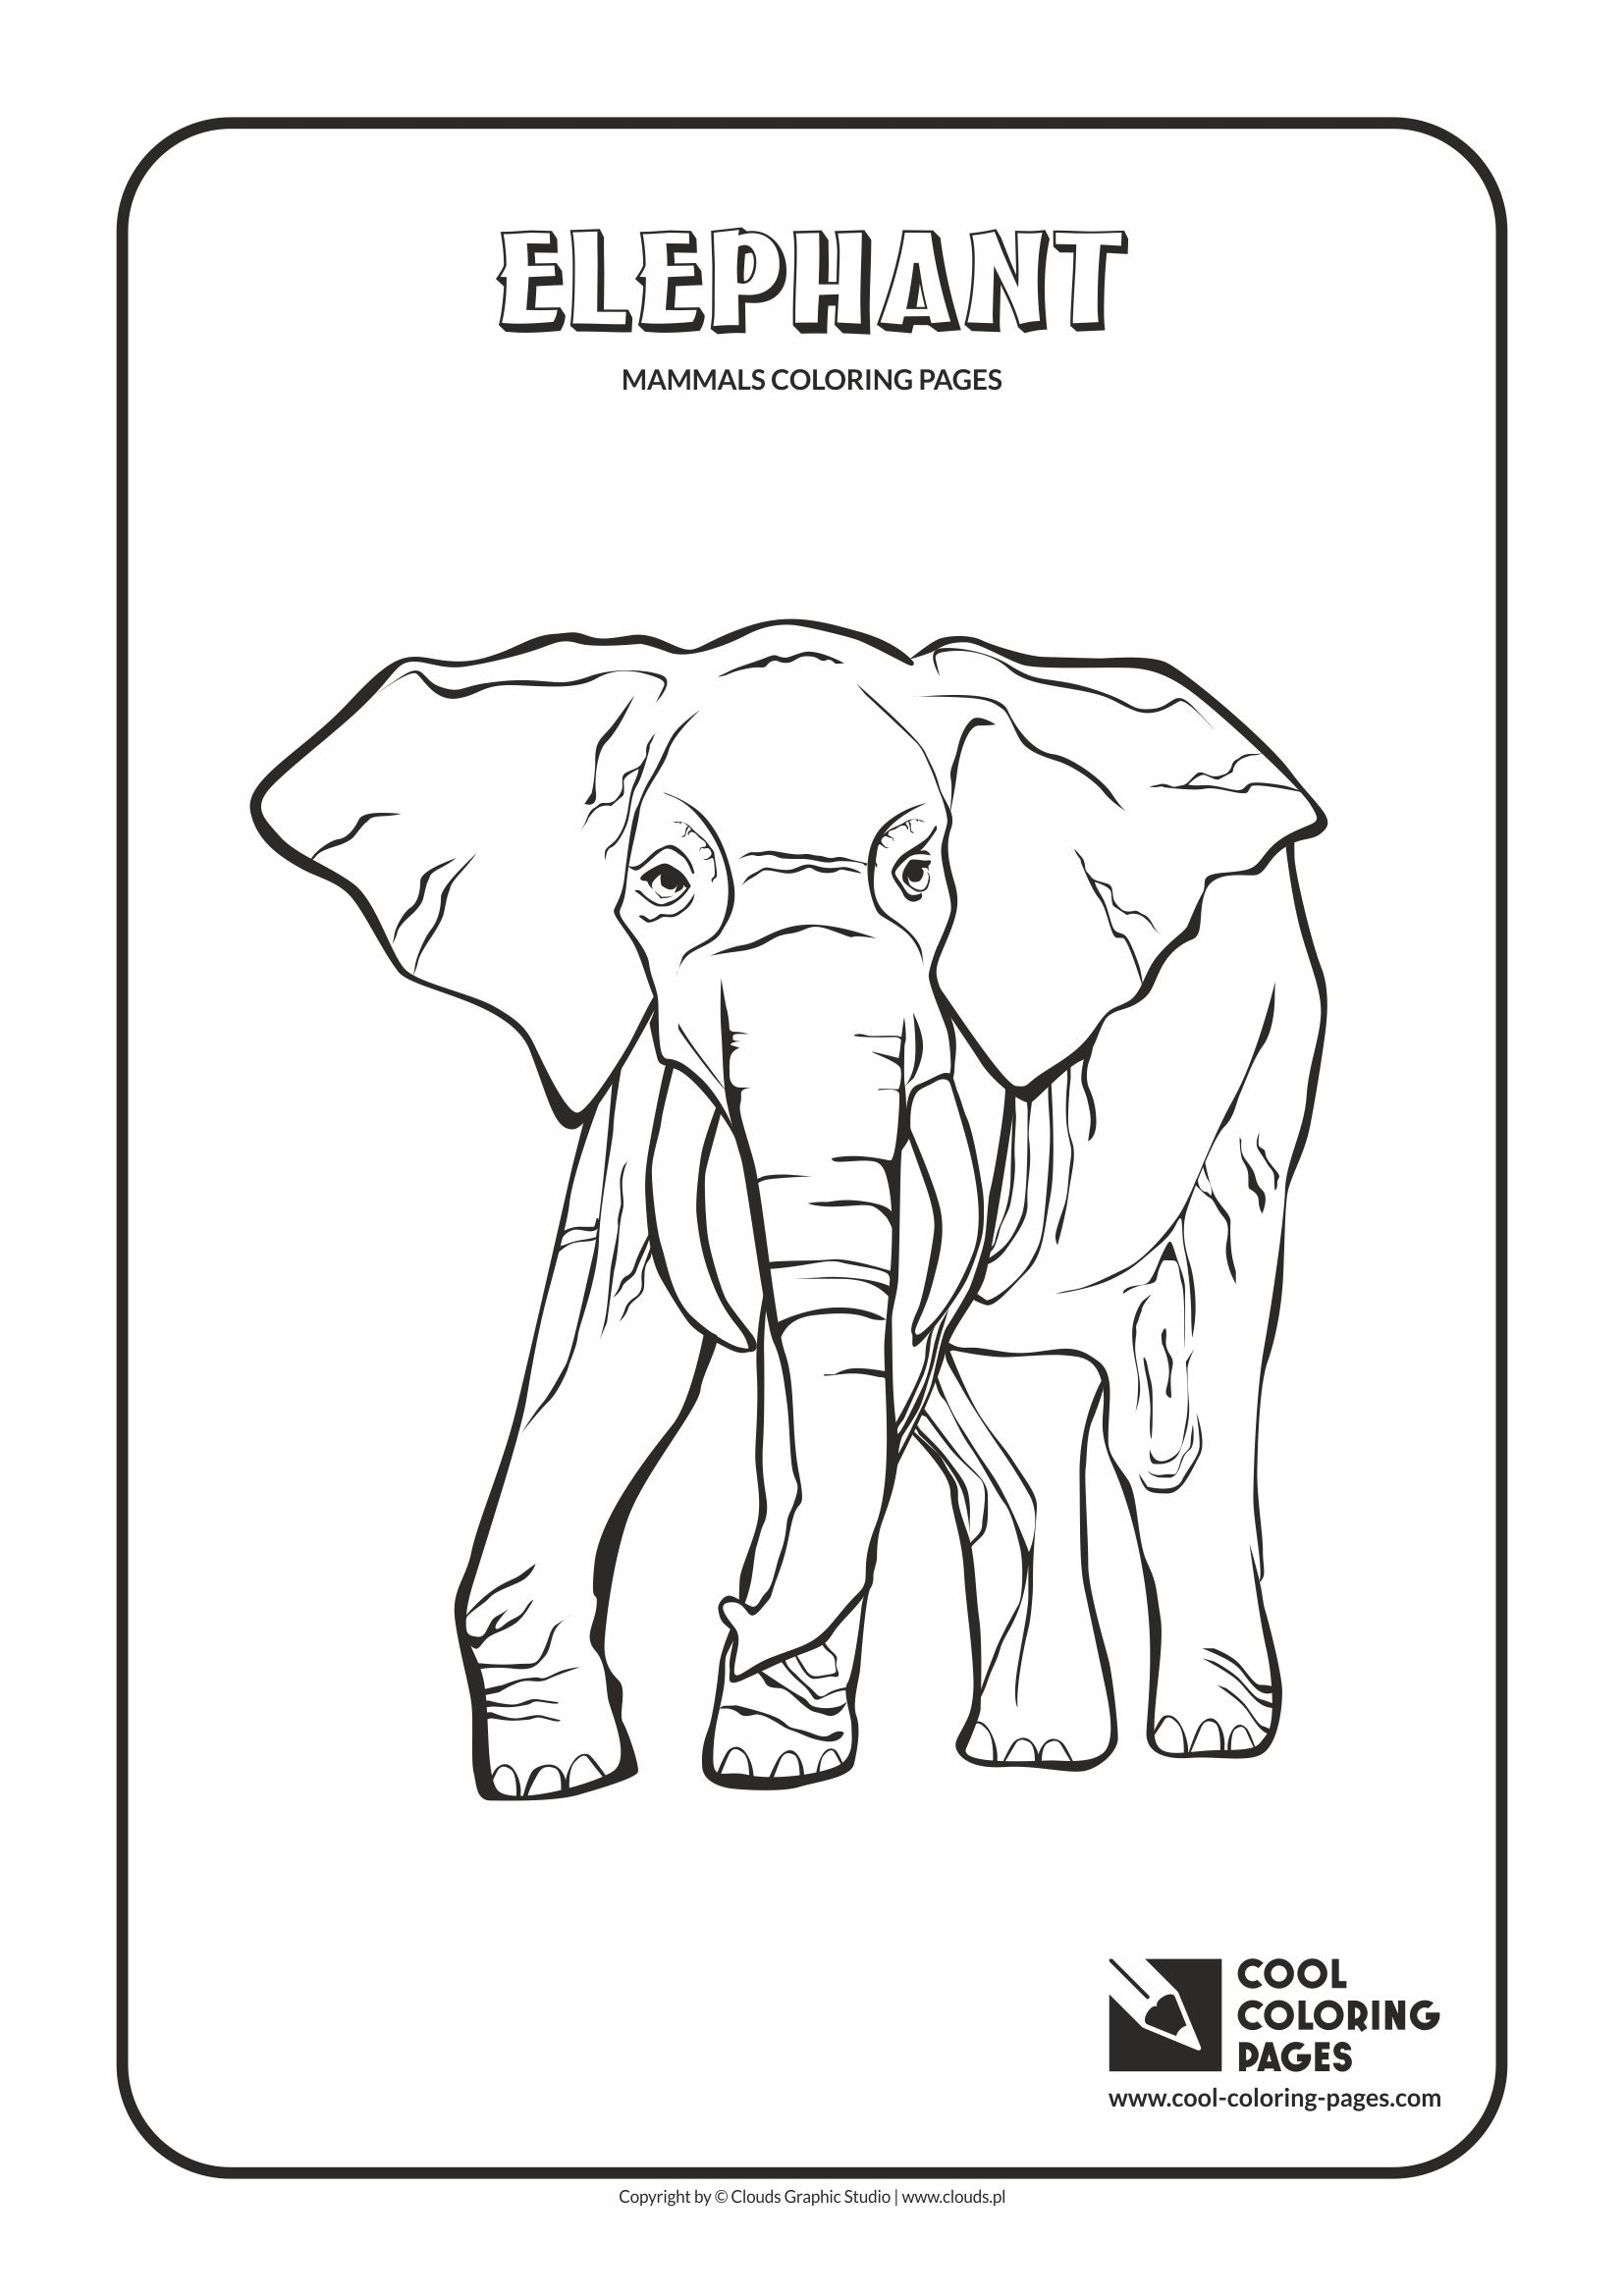 Cool Coloring Pages - Animals / Mammals. Coloring page with elephant